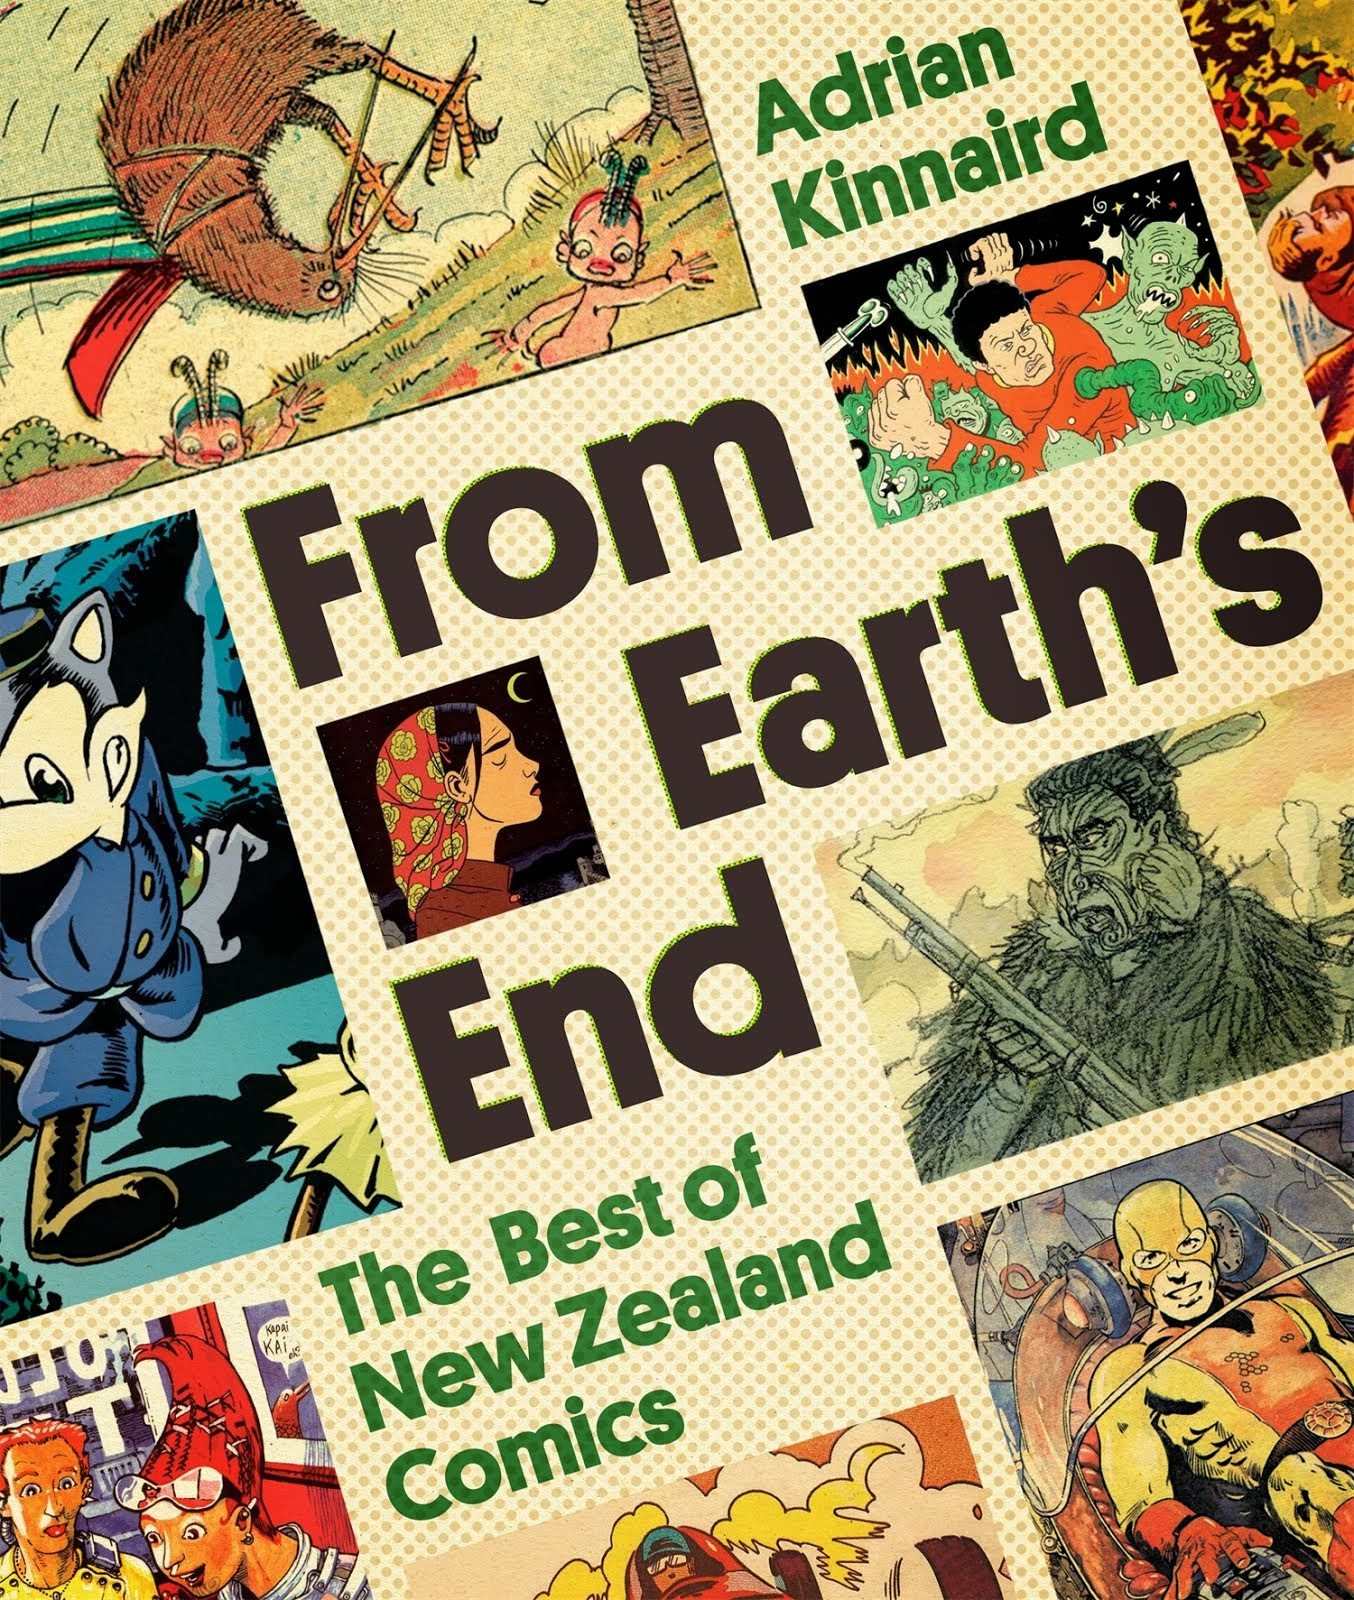 Buy From Earth's End: The Best of New Zealand Comics HERE!